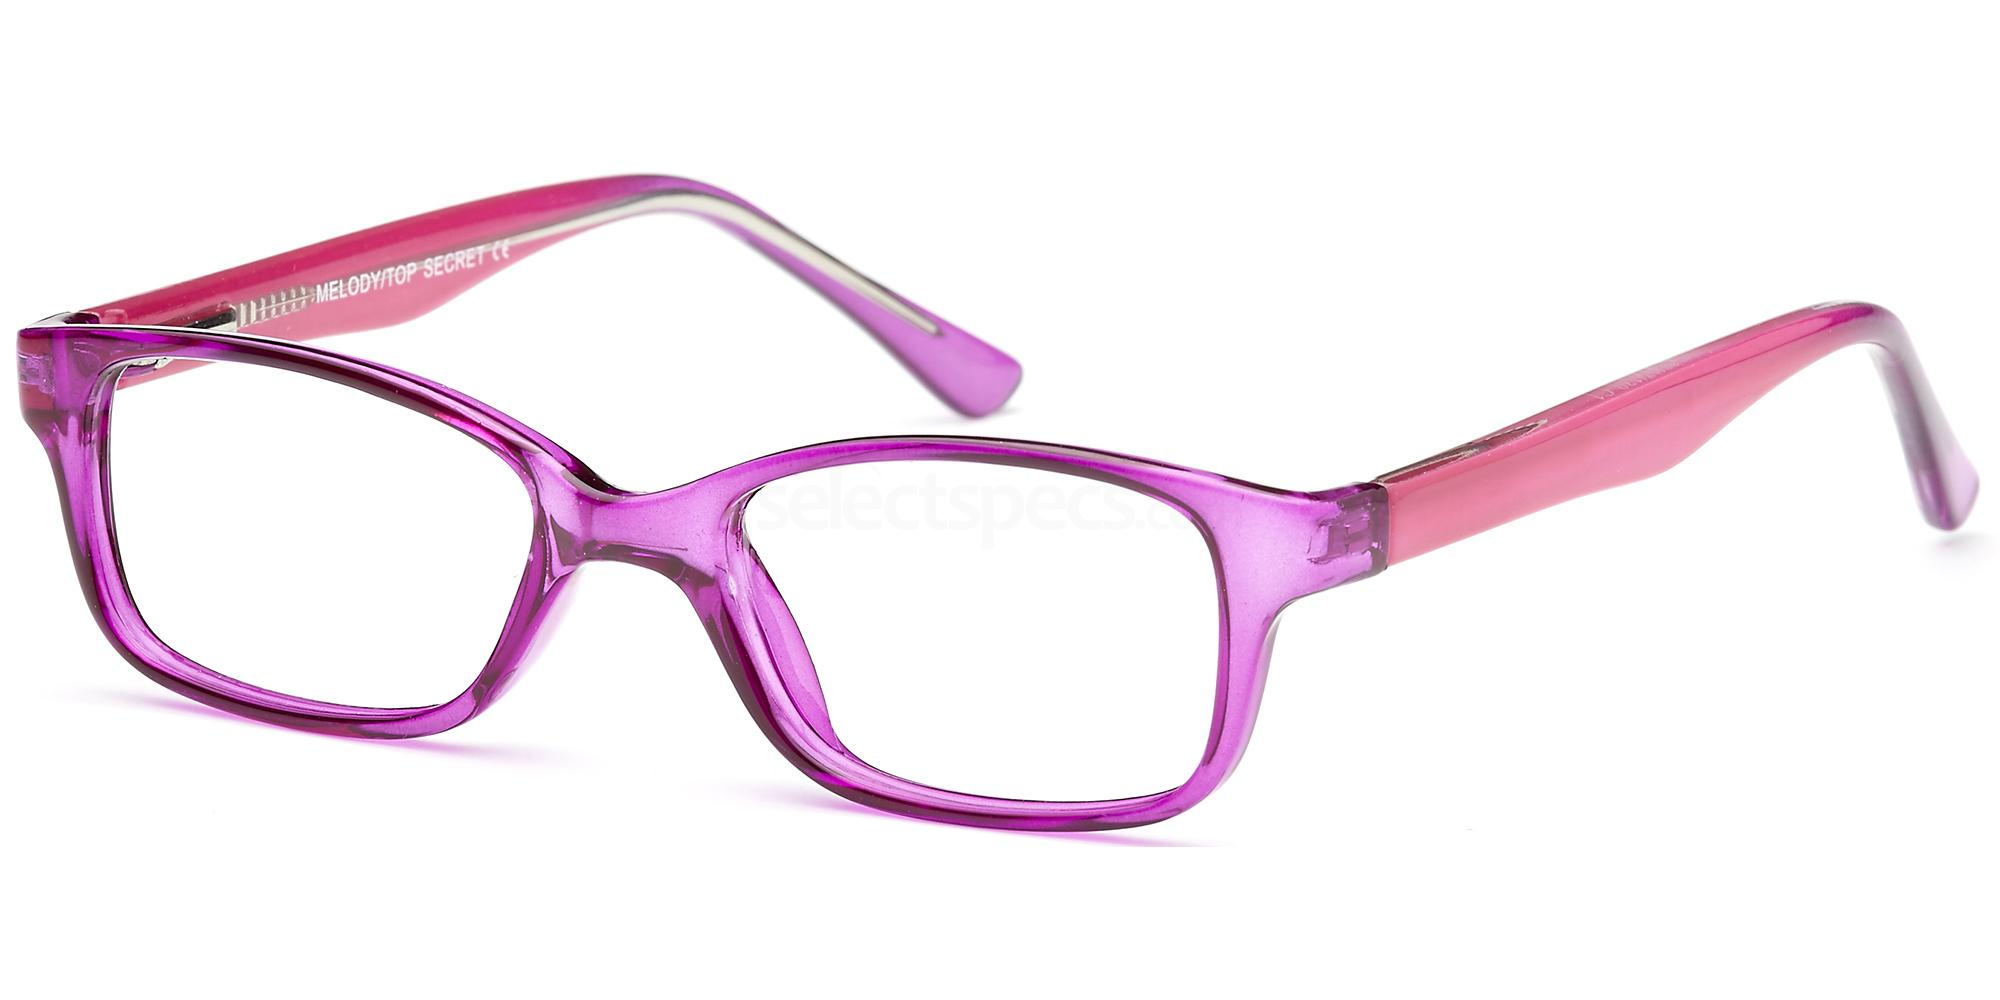 C1 MELODY Glasses, Top Secret KIDS